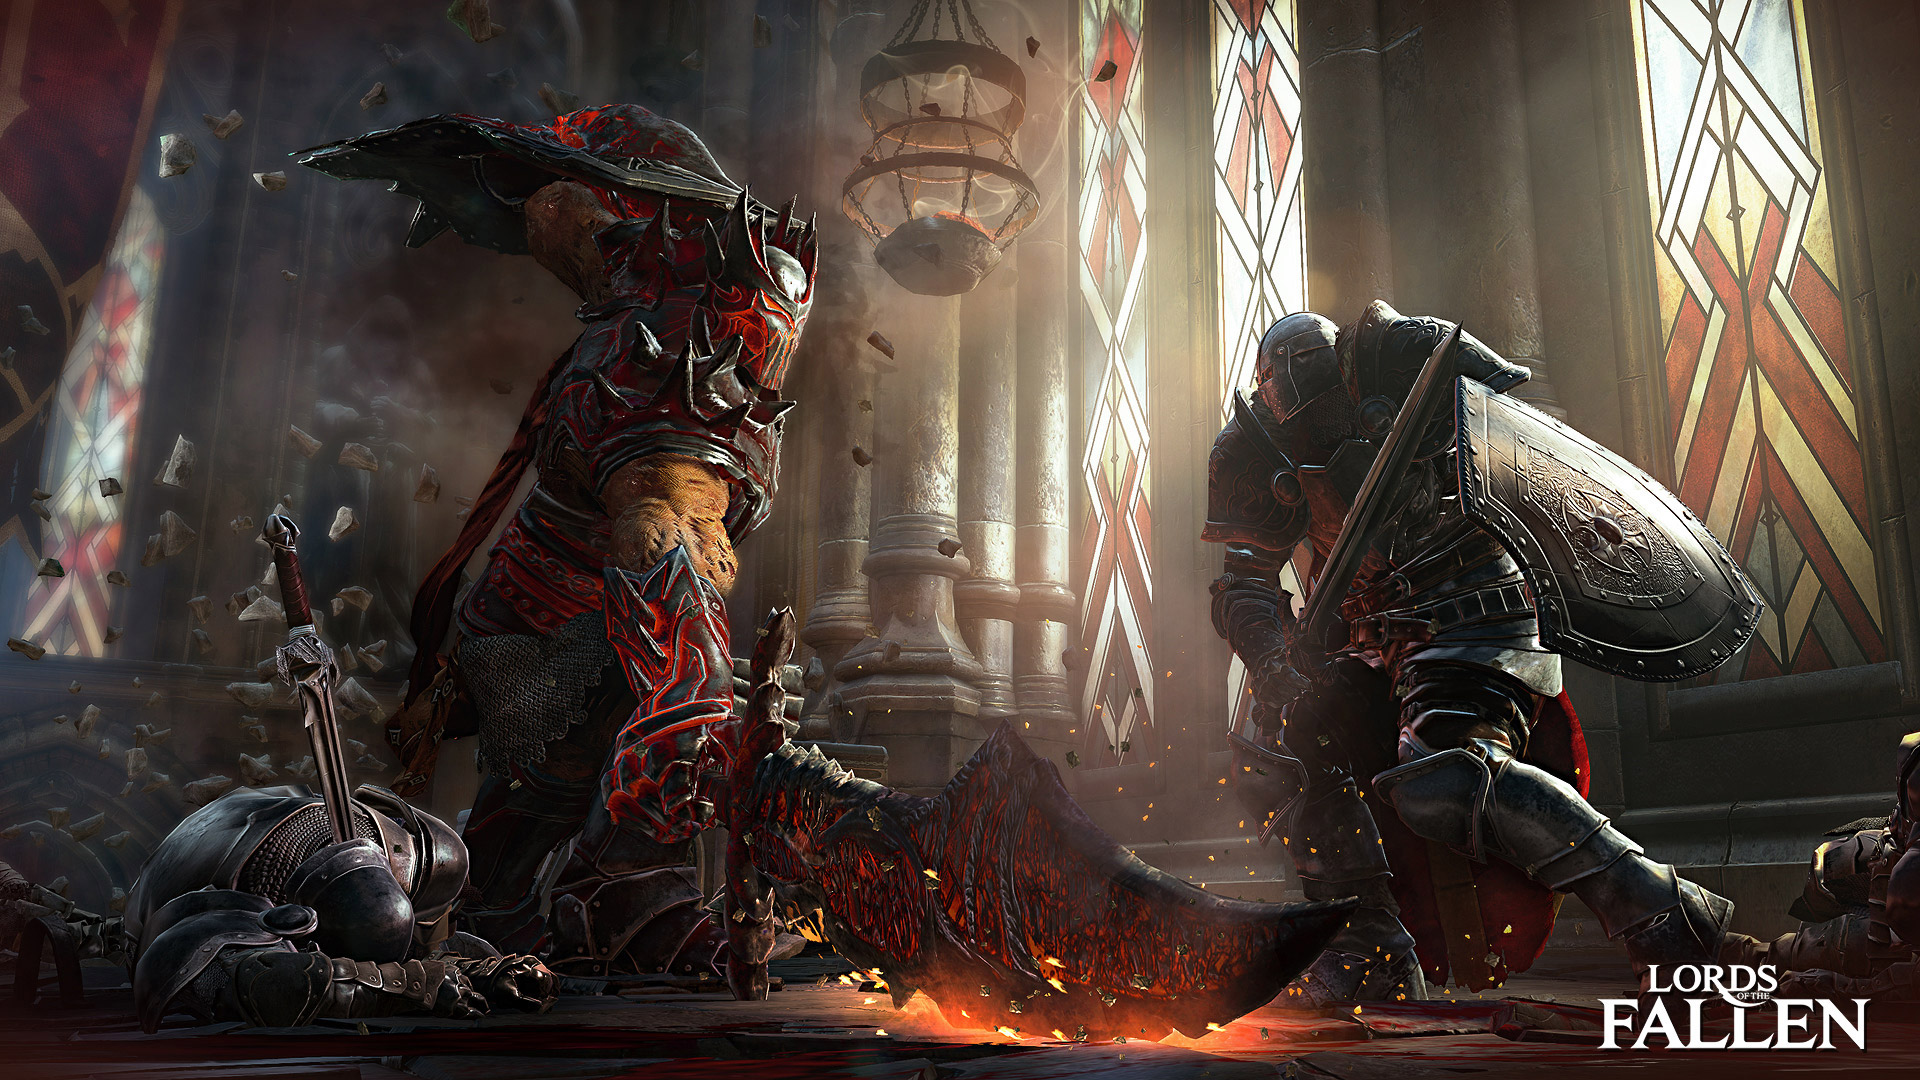 Free Lords of the Fallen Wallpaper in 1920x1080